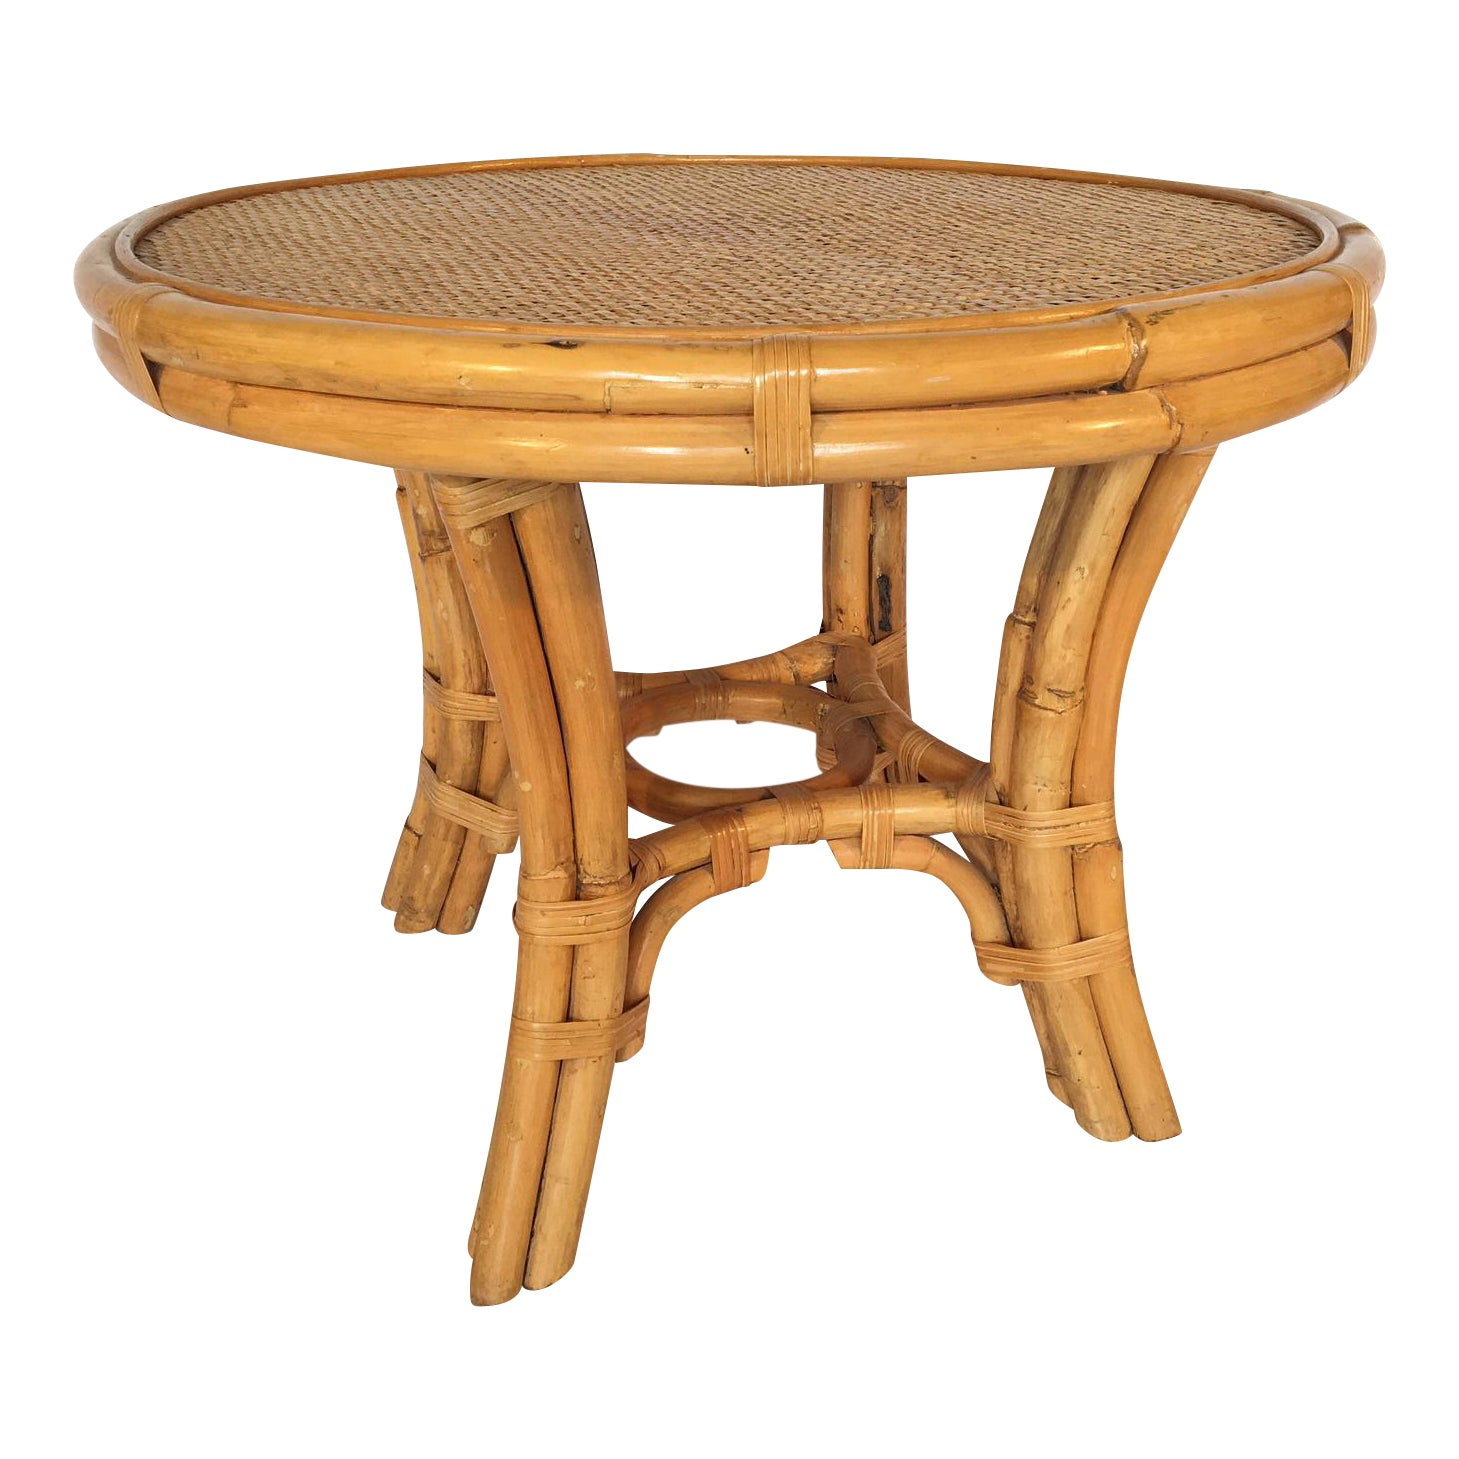 Vintage Palm Beach Cane And Rattan Round Side Table Chairish